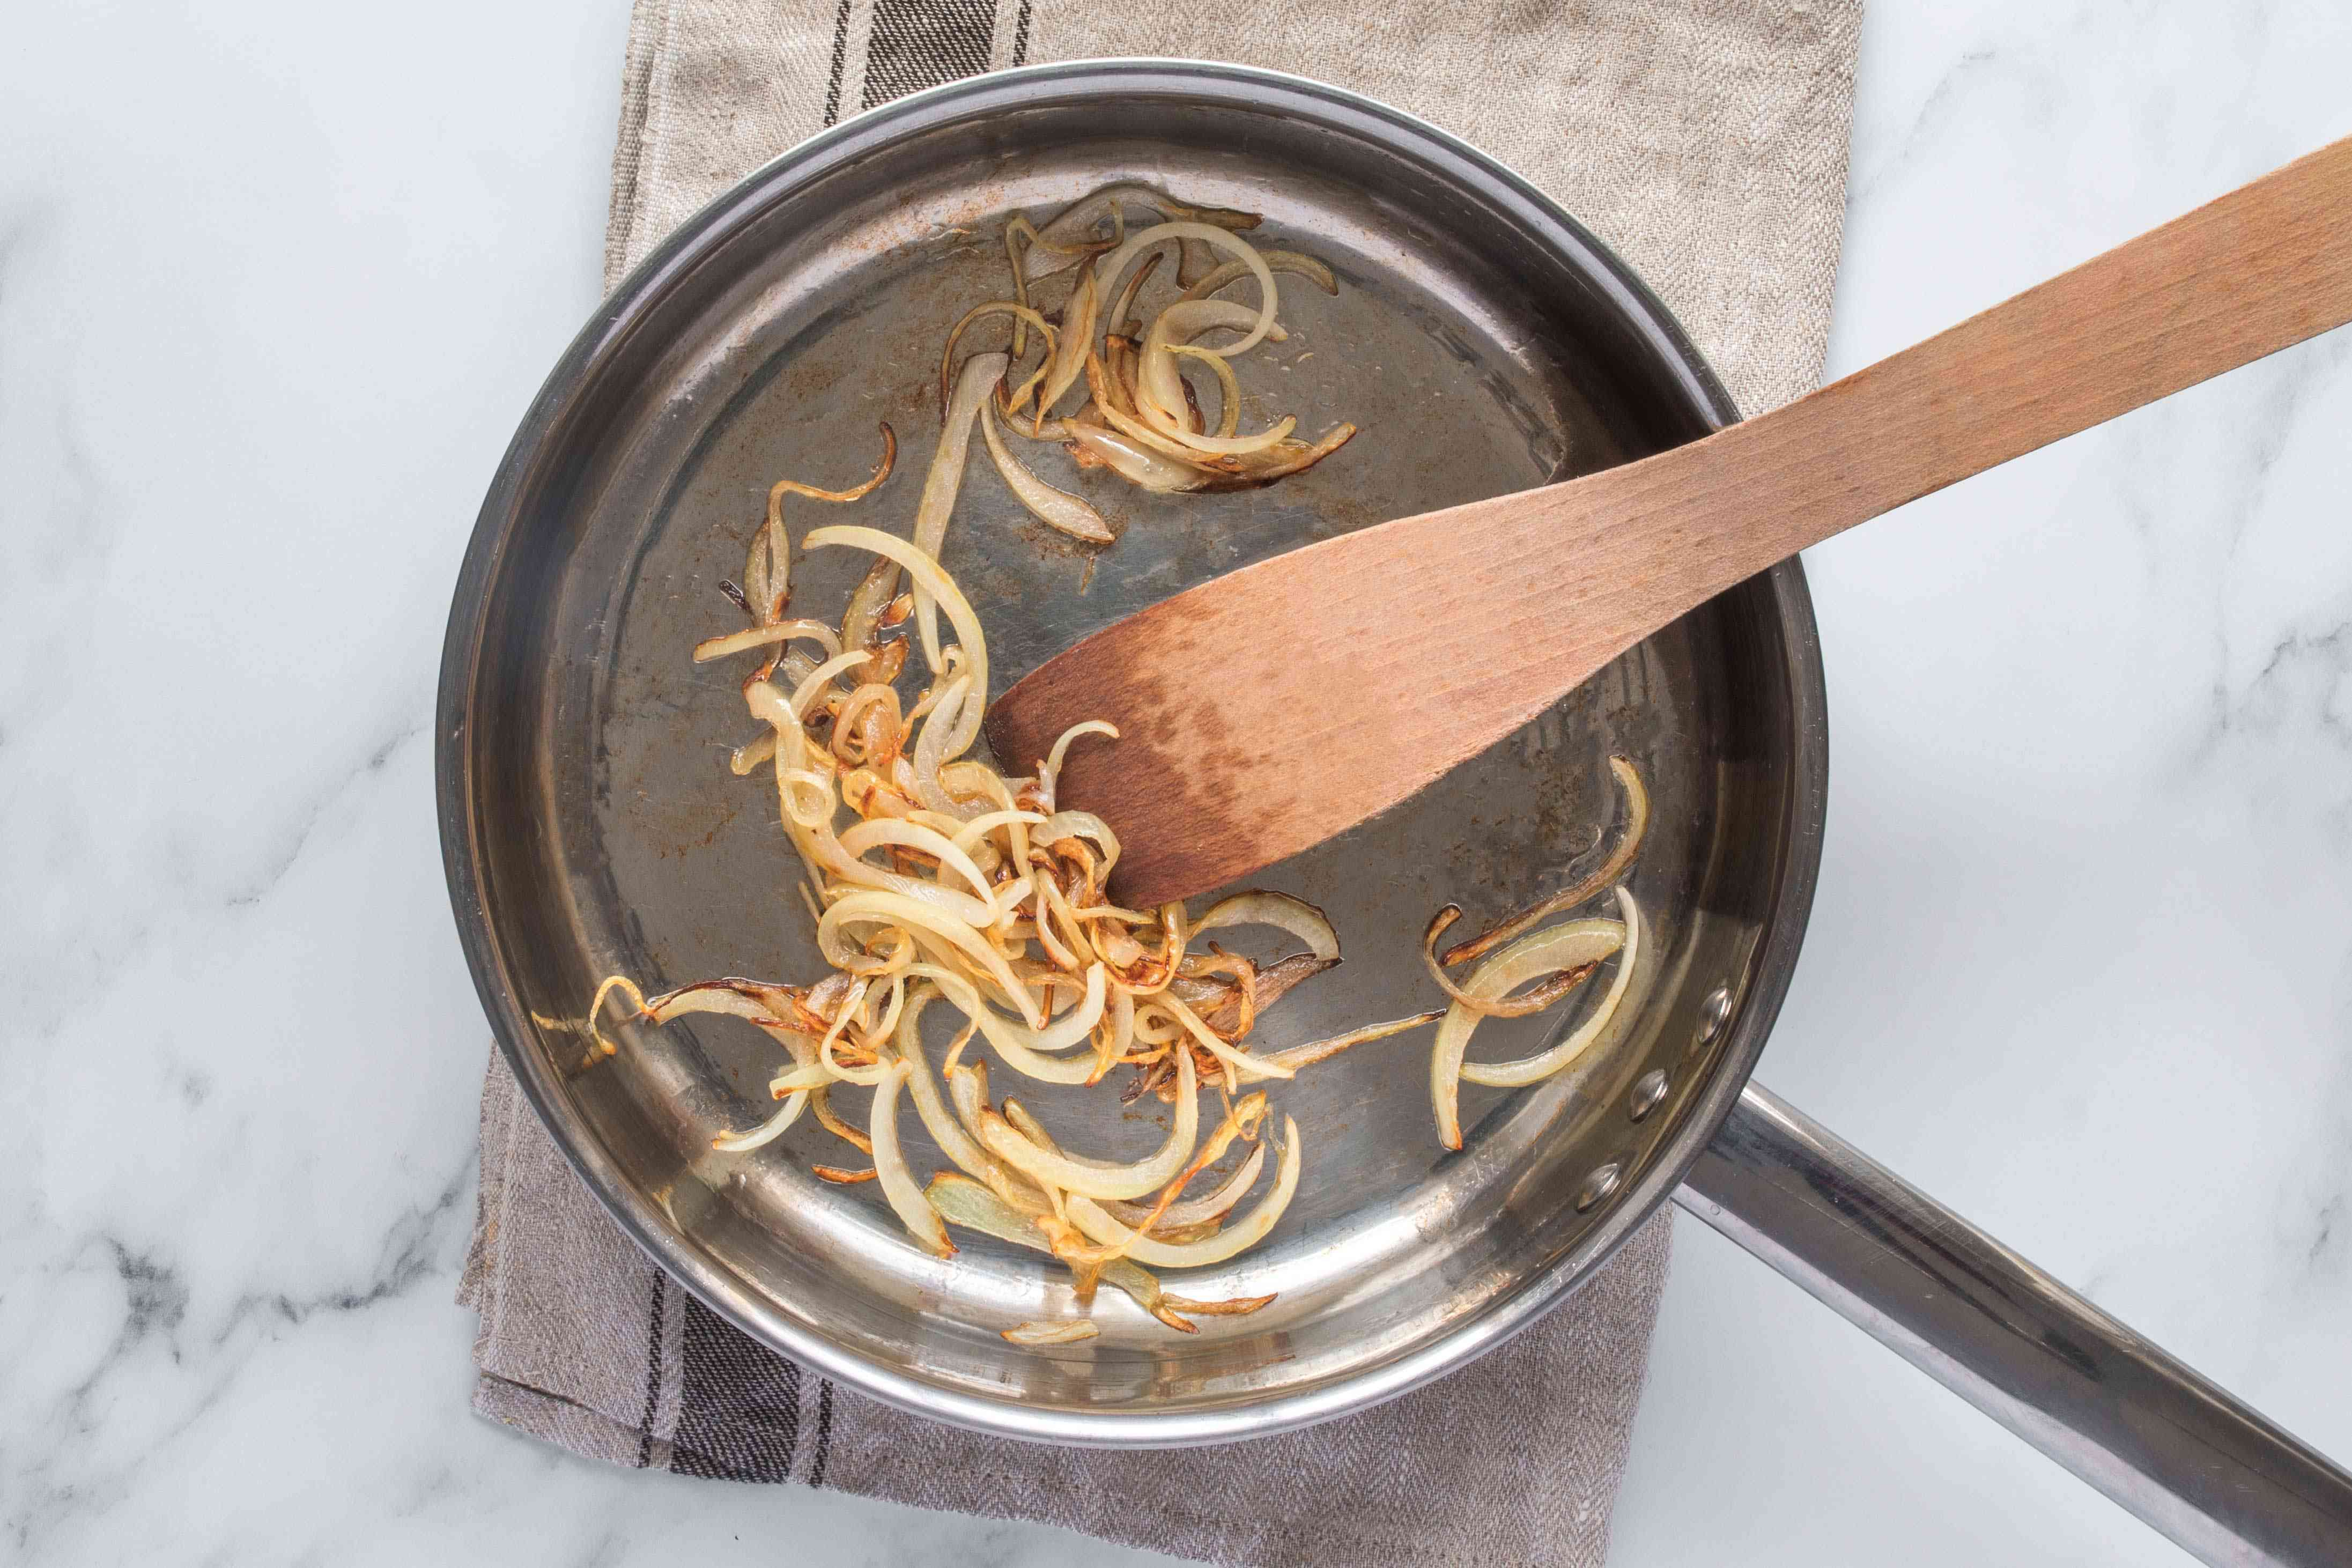 Onion cooking in a pan